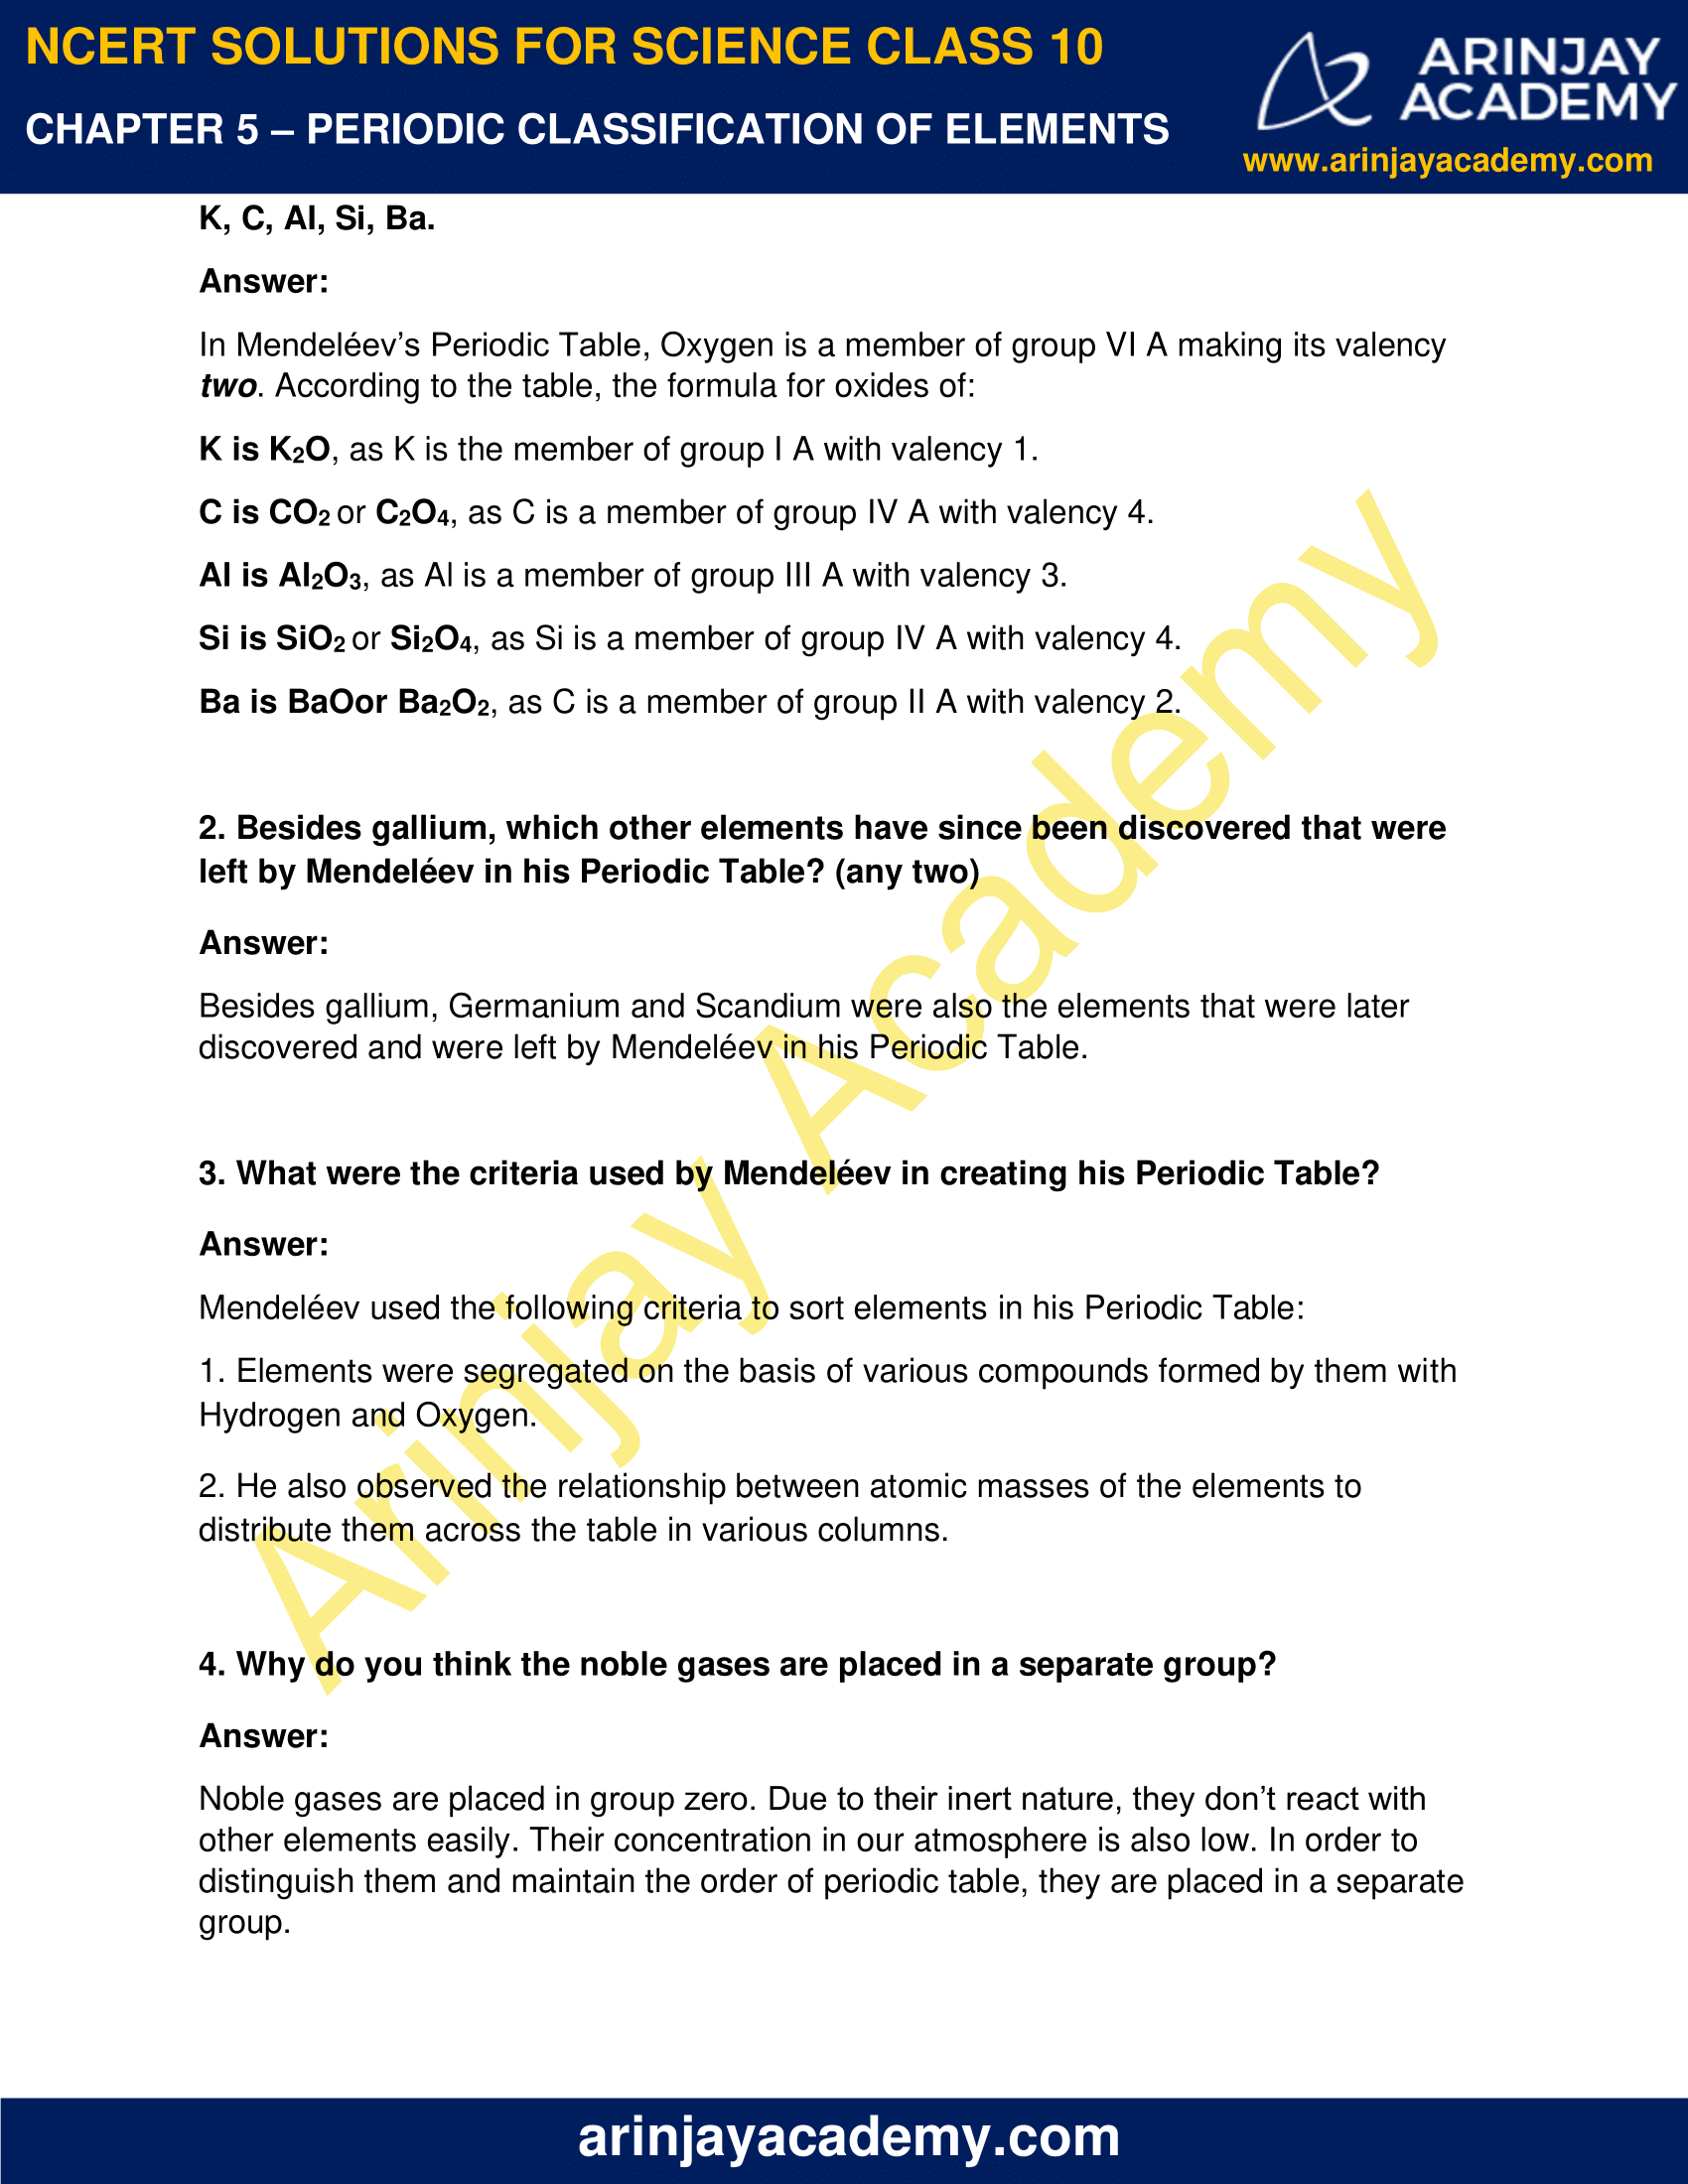 NCERT Solutions for Class 10 Science Chapter 5 image 2